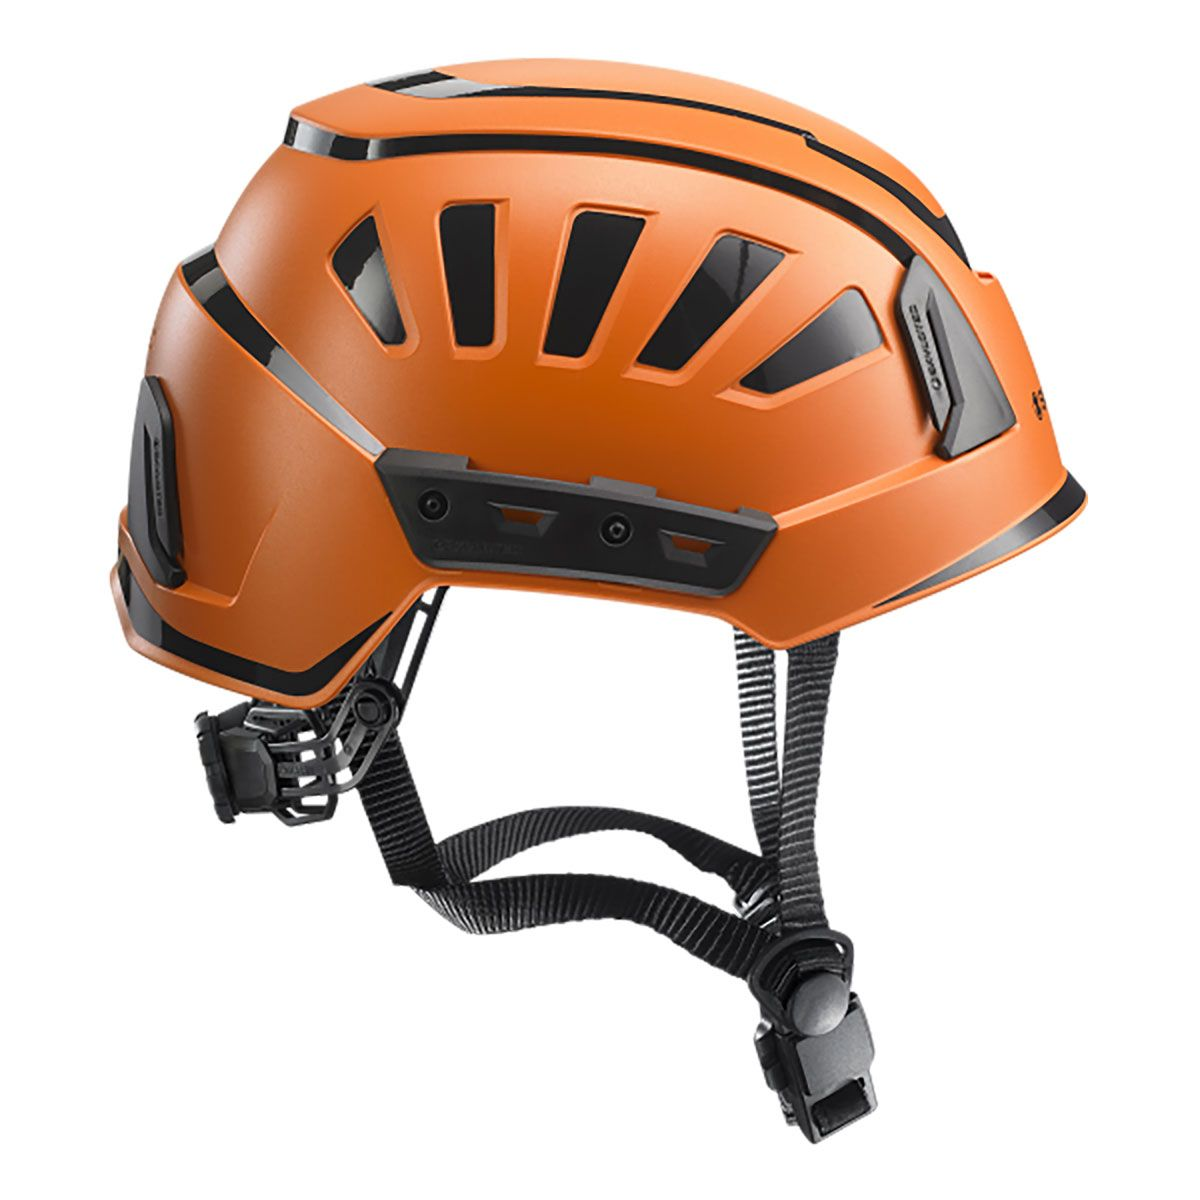 Skylotec Inceptor GRX Rope Access & Work-at-heights Helmet